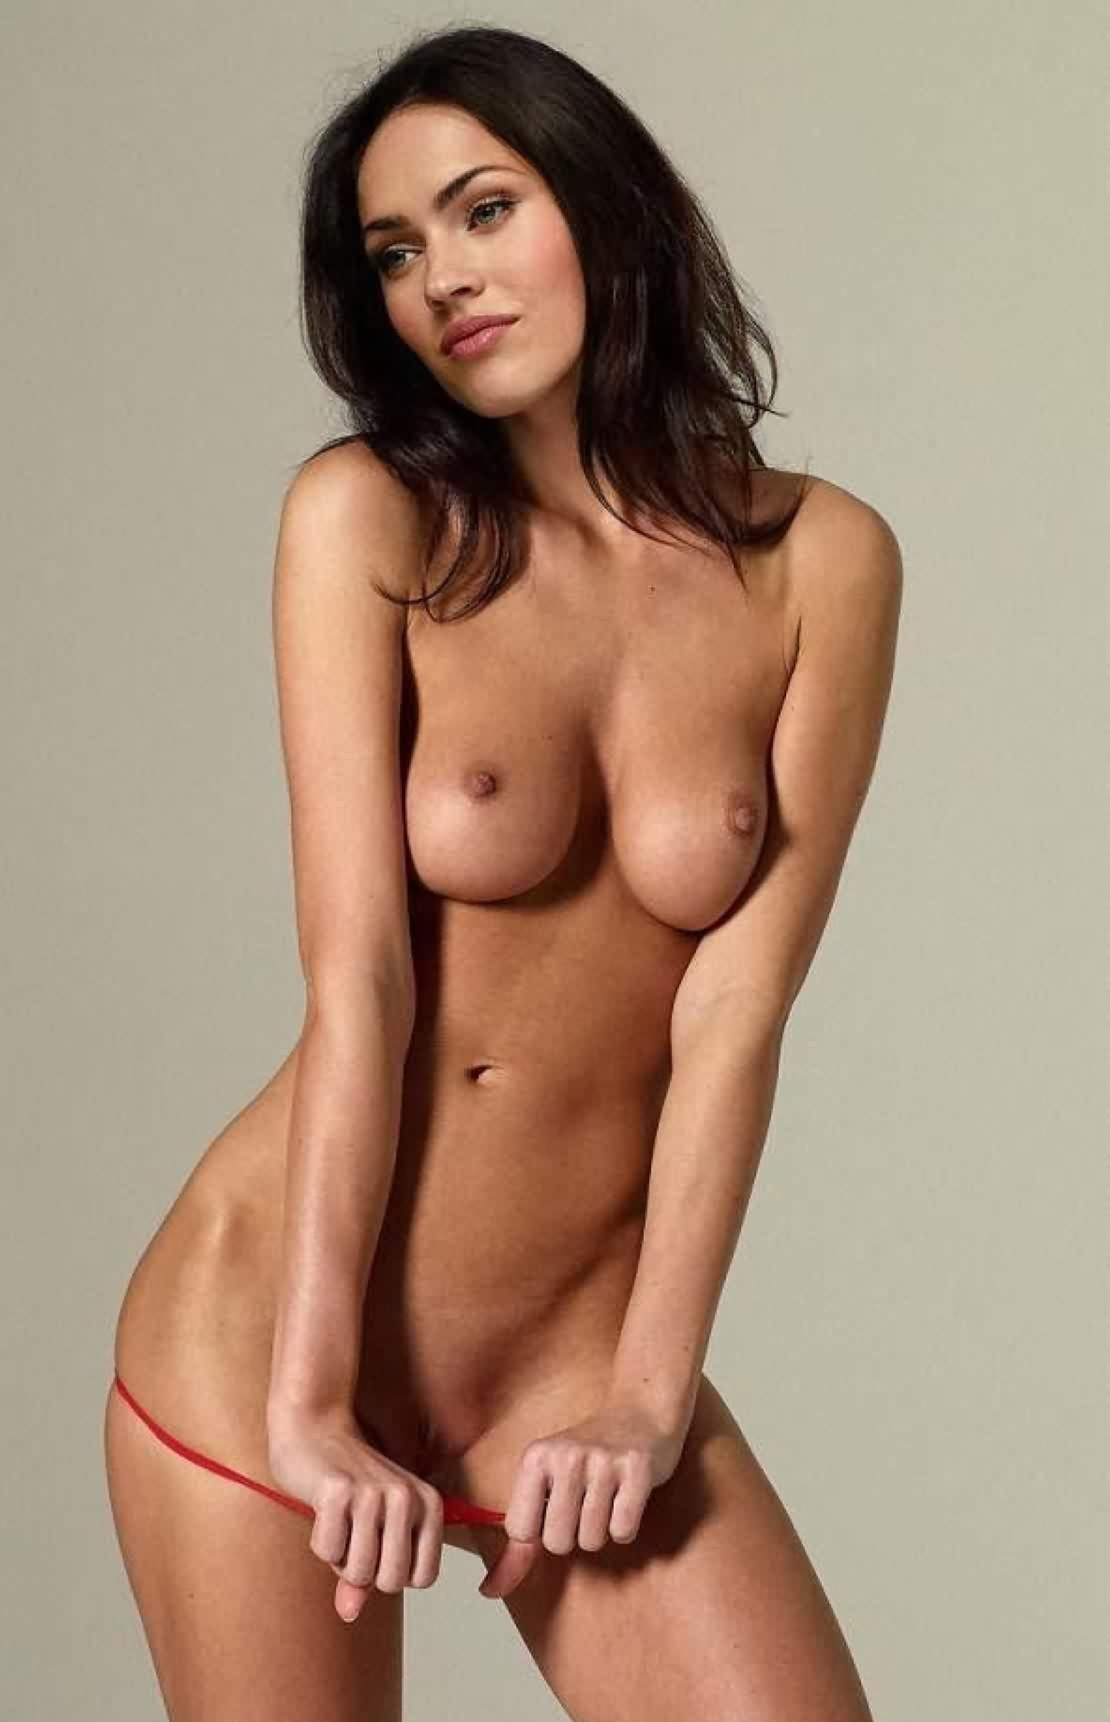 Megan Fox Hot Nude Photo Shoot - 56 Collection Megan Fox Hot Nude xxx Pics